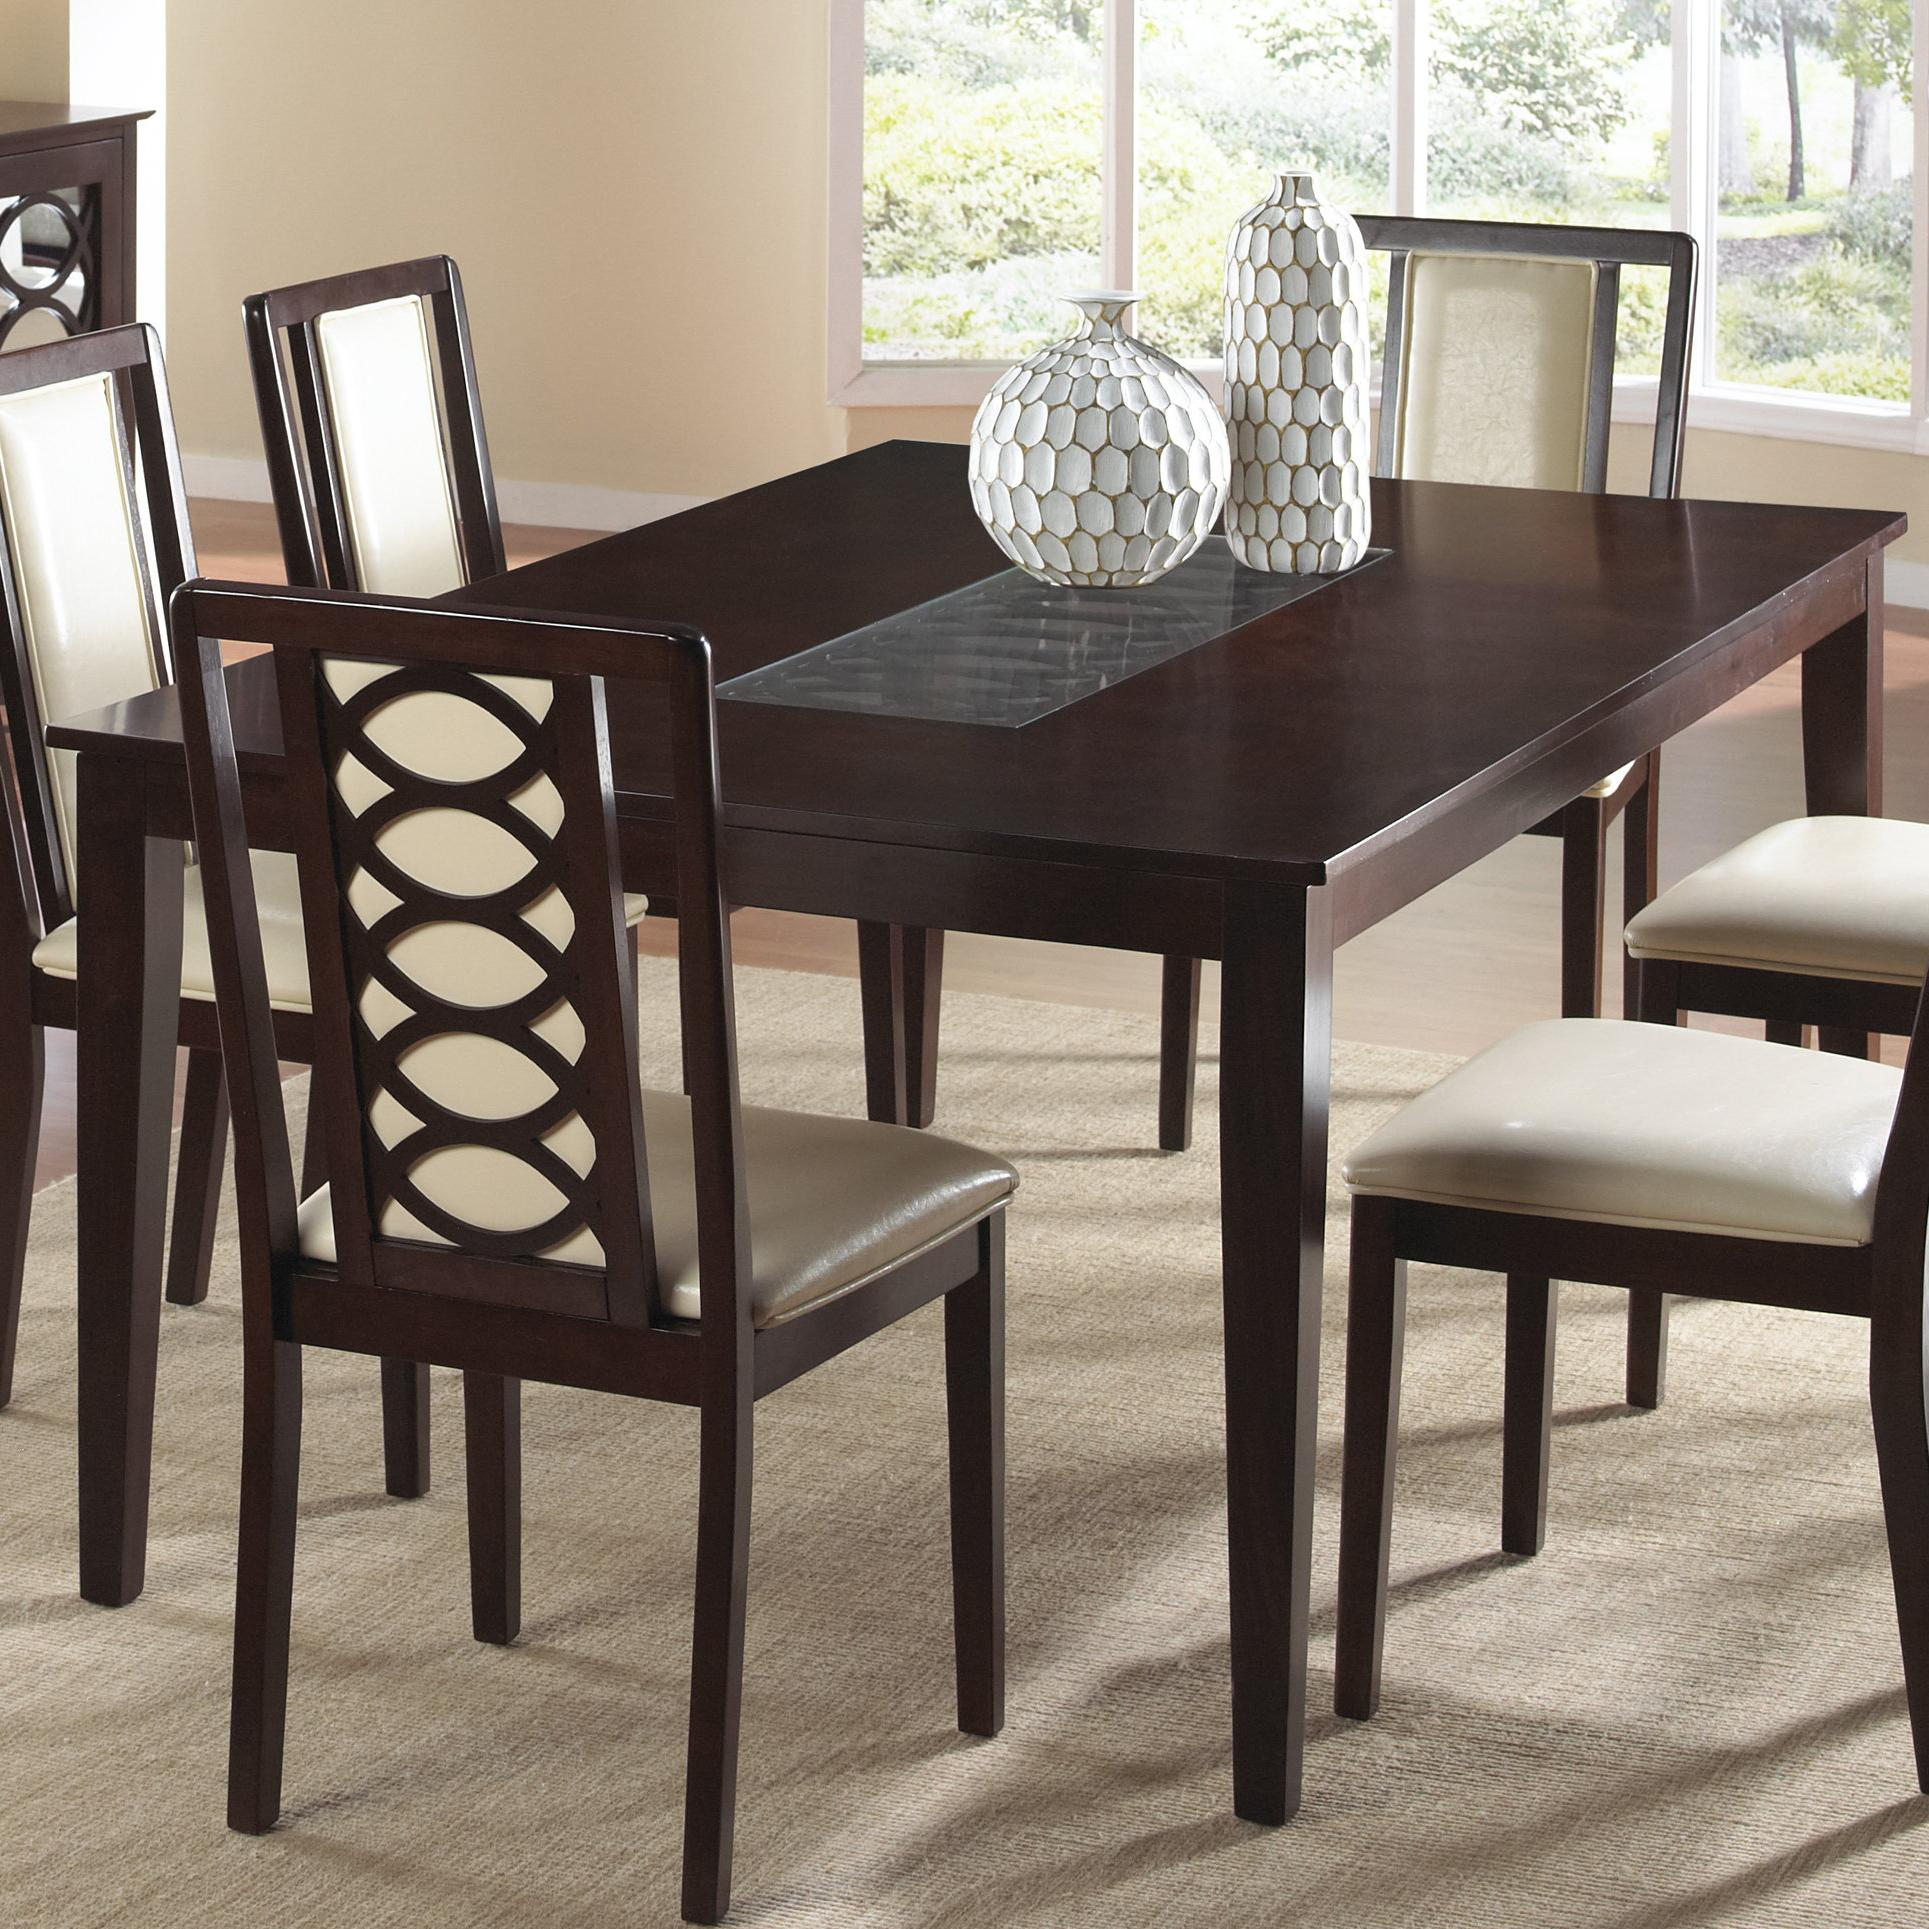 value city furniture kitchen tables remodel estimate cramco inc jasmyn rectangular wood table